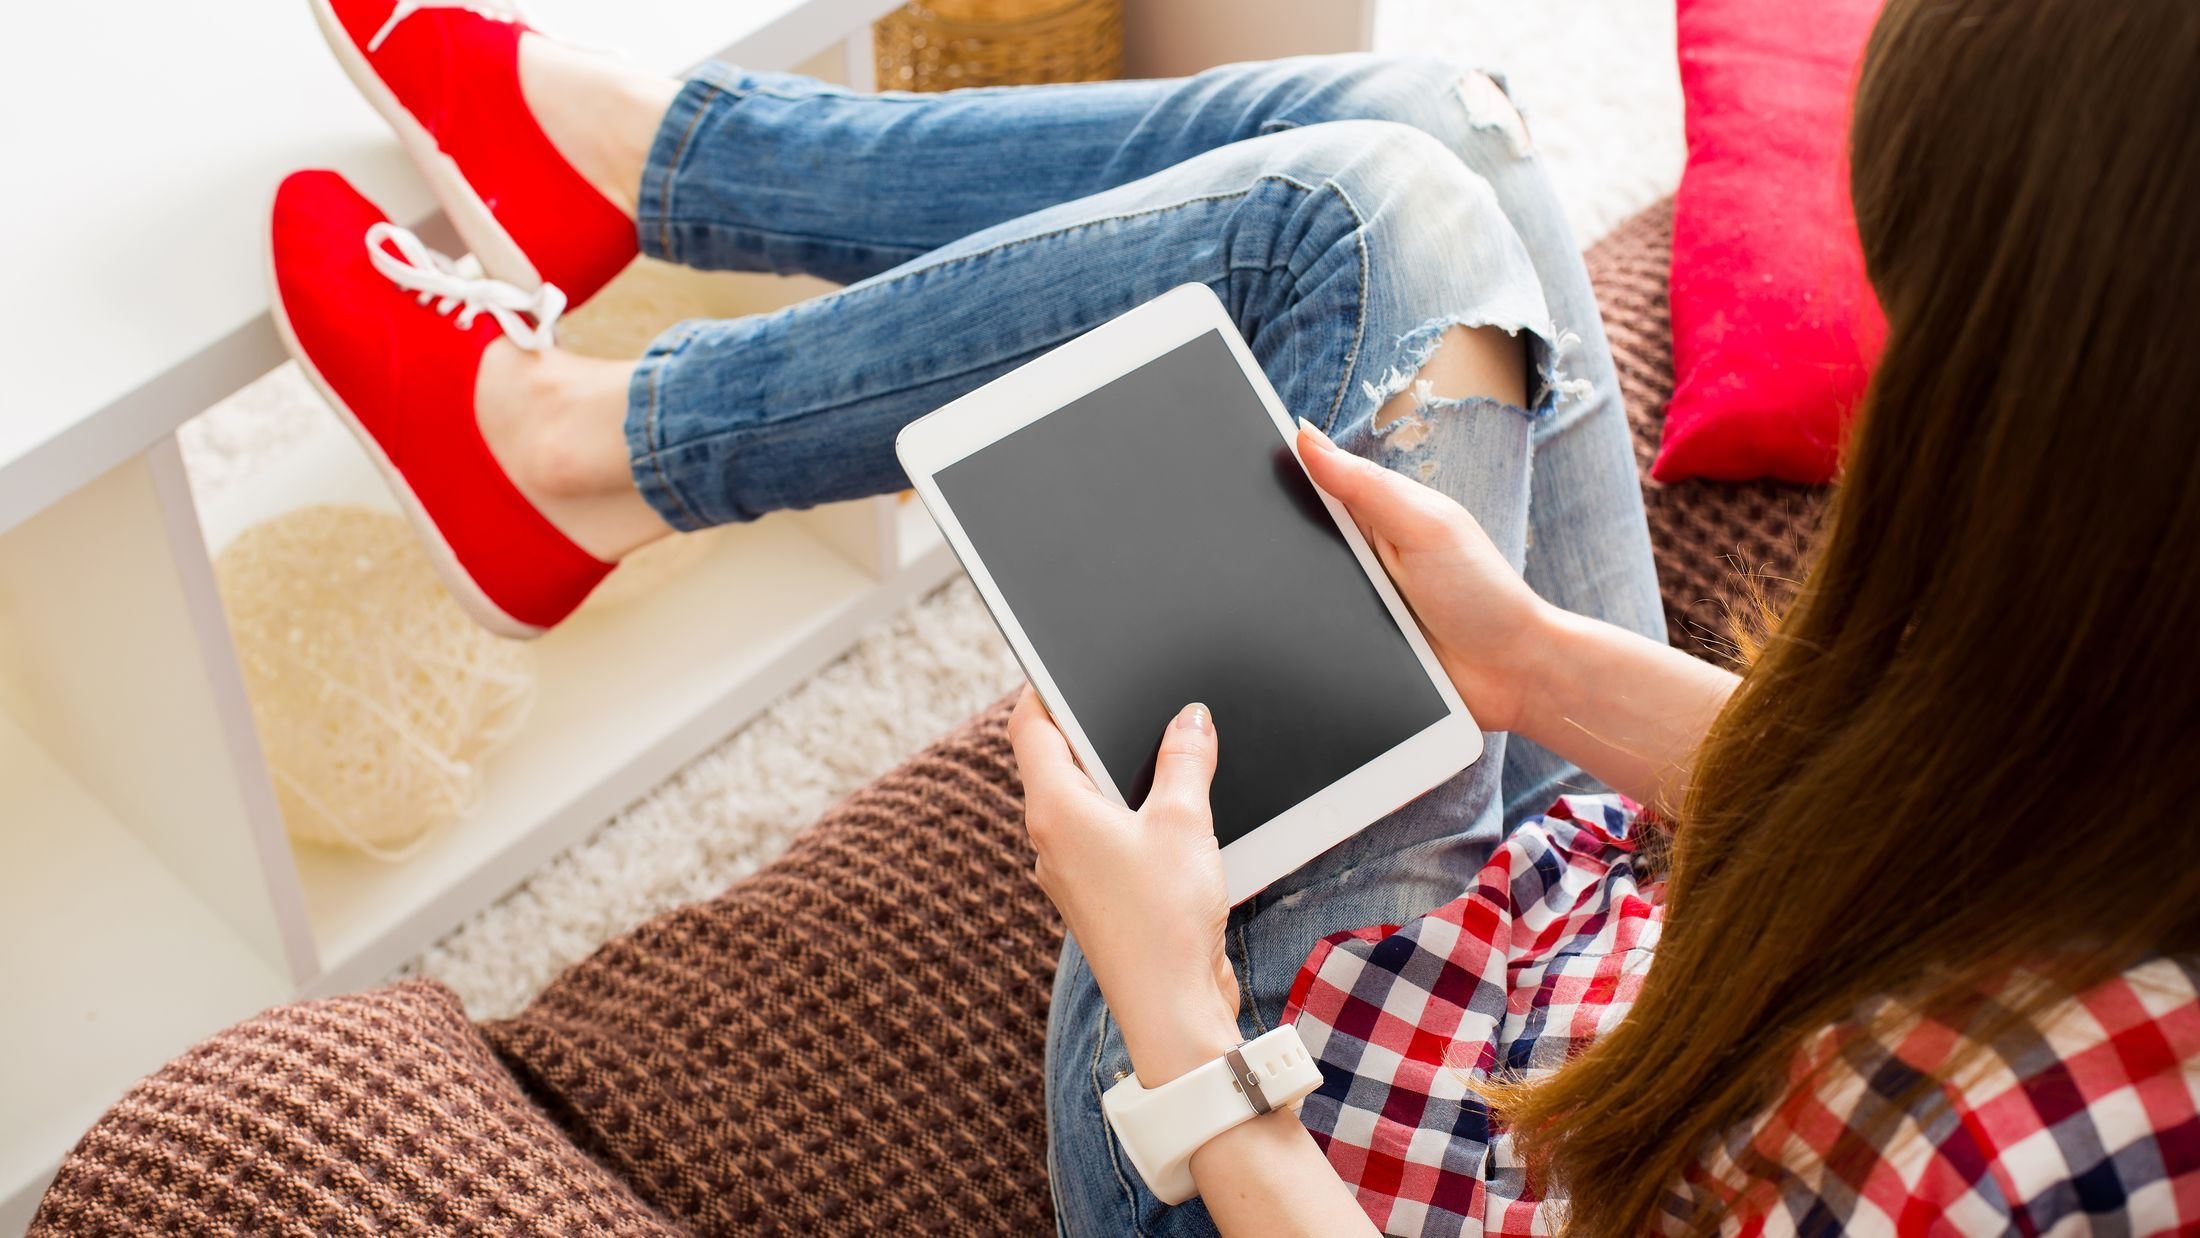 Woman at home relaxing on sofa couch reading email on the tablet computer wifi connection; Shutterstock ID 278640140; PO: Project Italy - Facilities images; Job: Project Italy - Facilities images; Client: H&J/Citalia